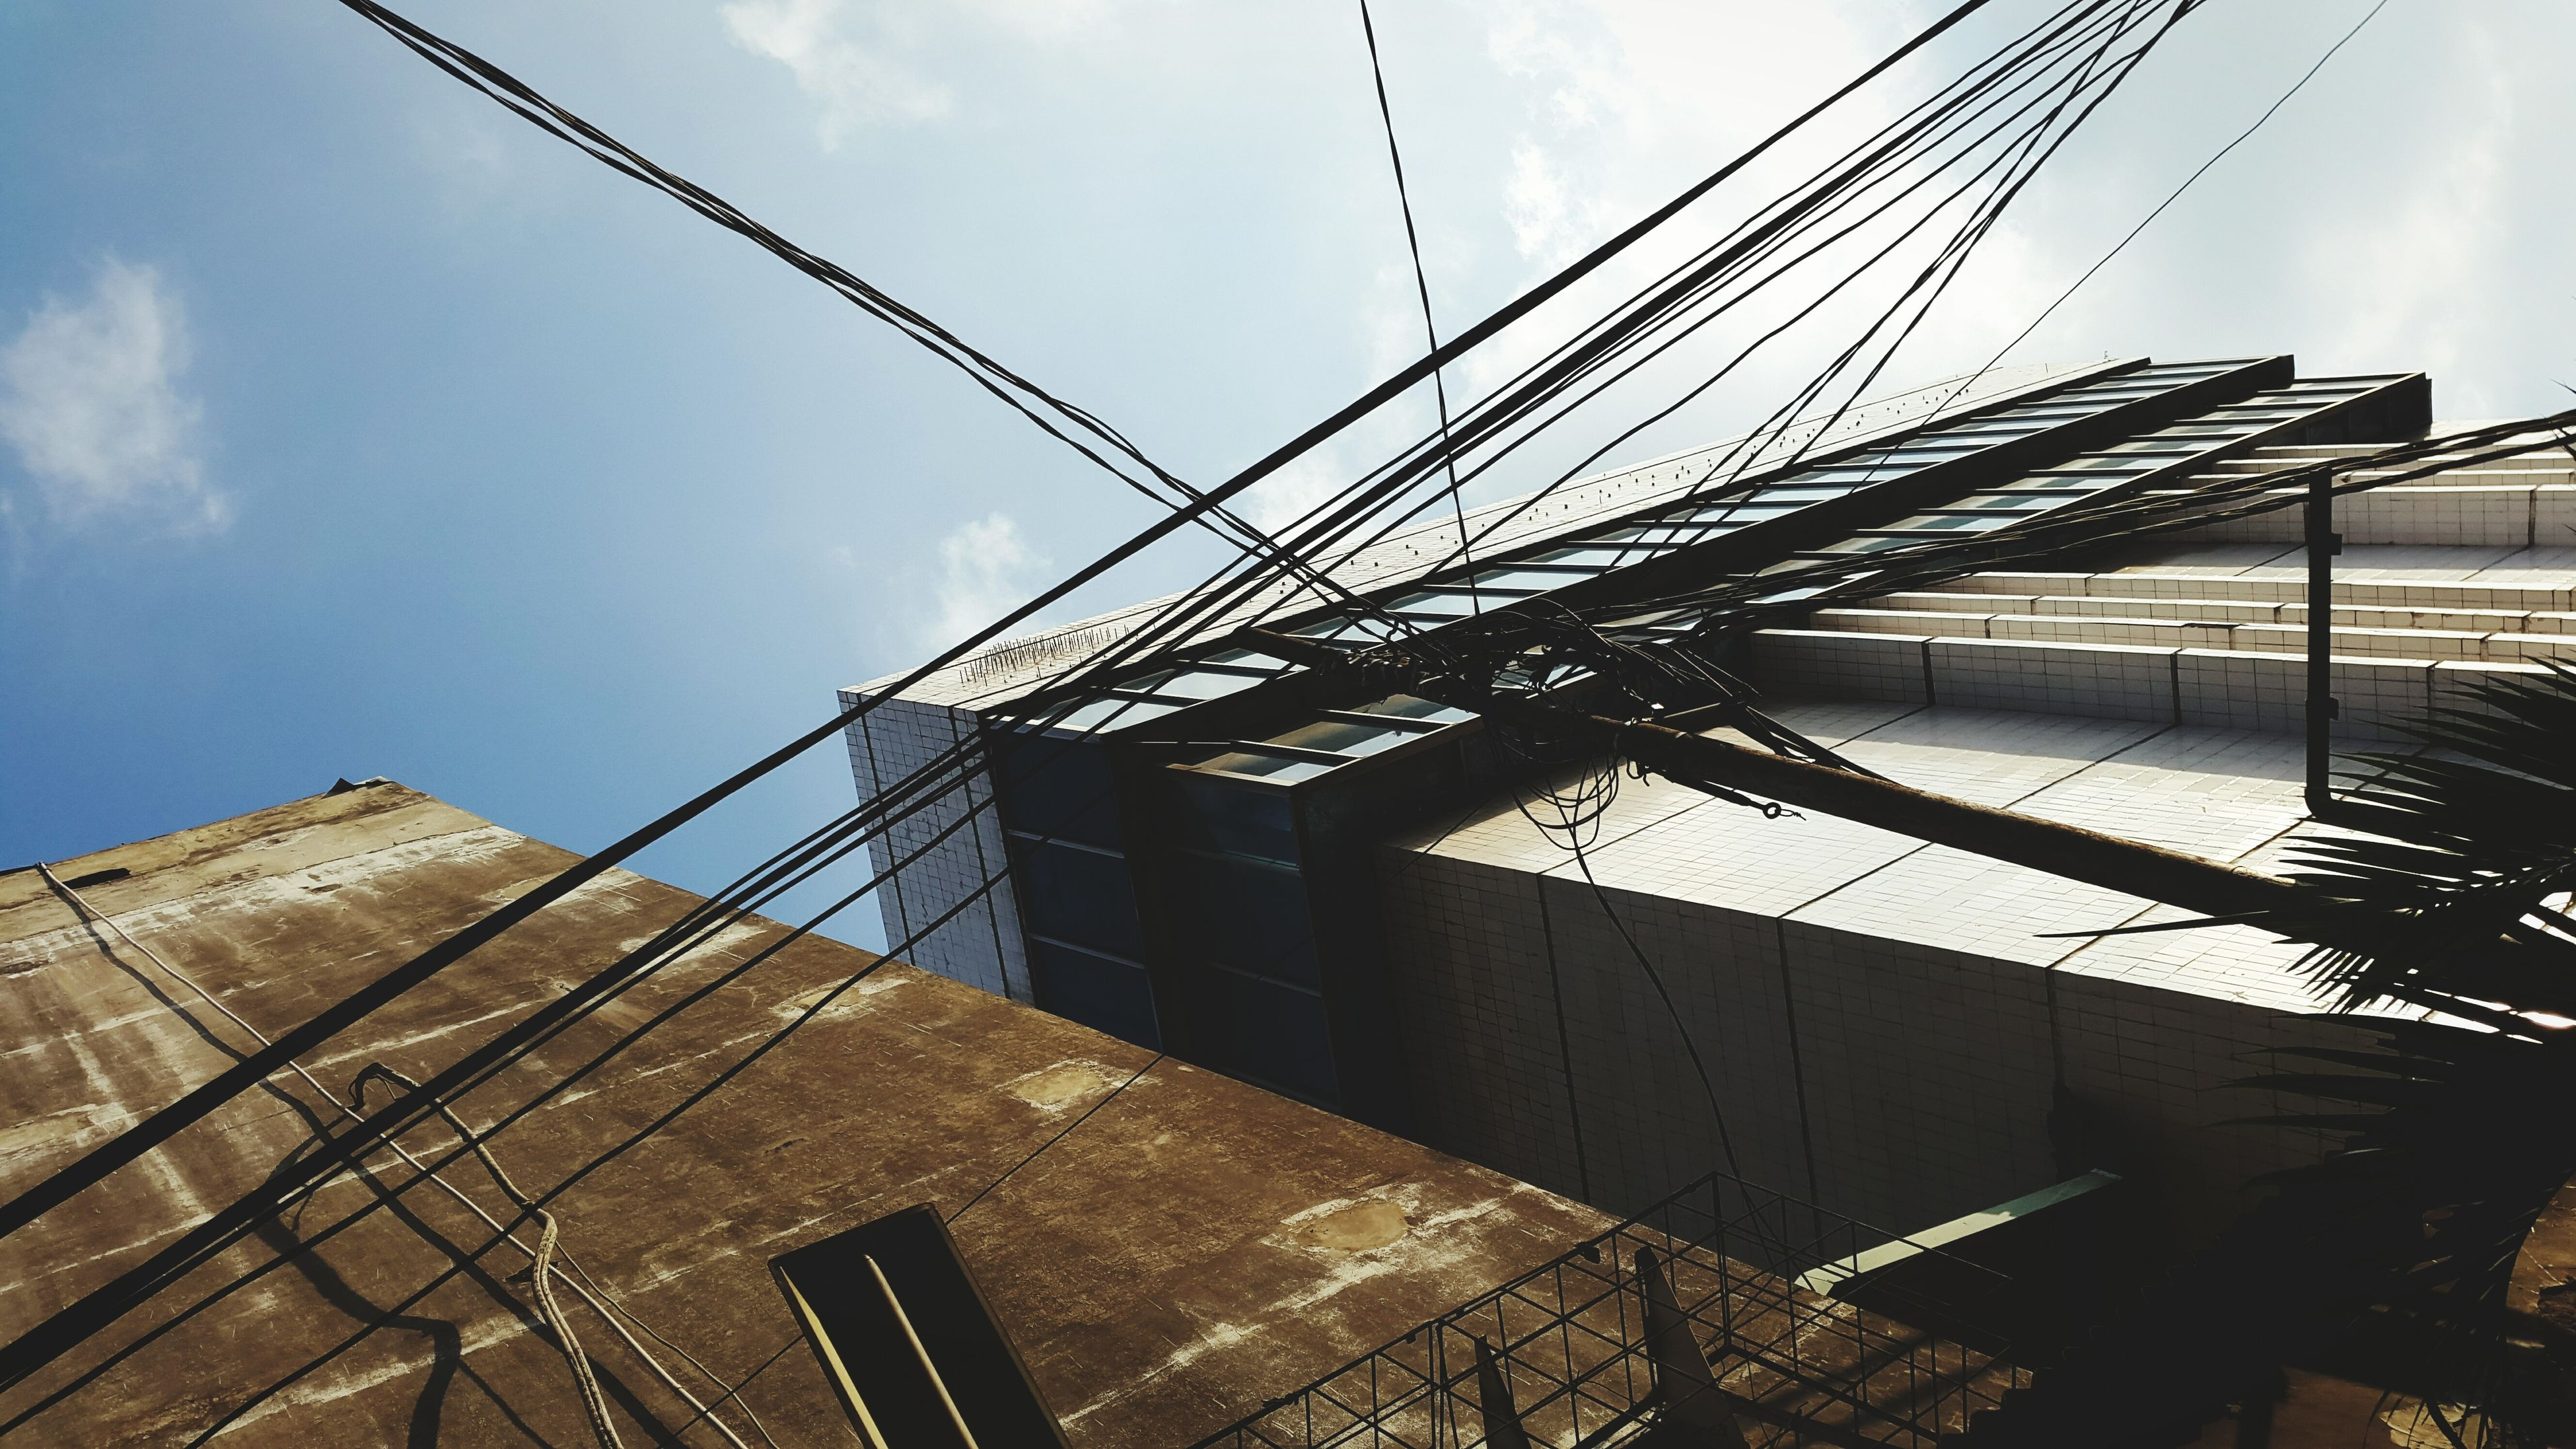 low angle view, sky, built structure, architecture, cloud - sky, building exterior, cloud, day, metal, cloudy, outdoors, connection, no people, tall - high, cable, electricity pylon, sunlight, power line, metallic, pattern